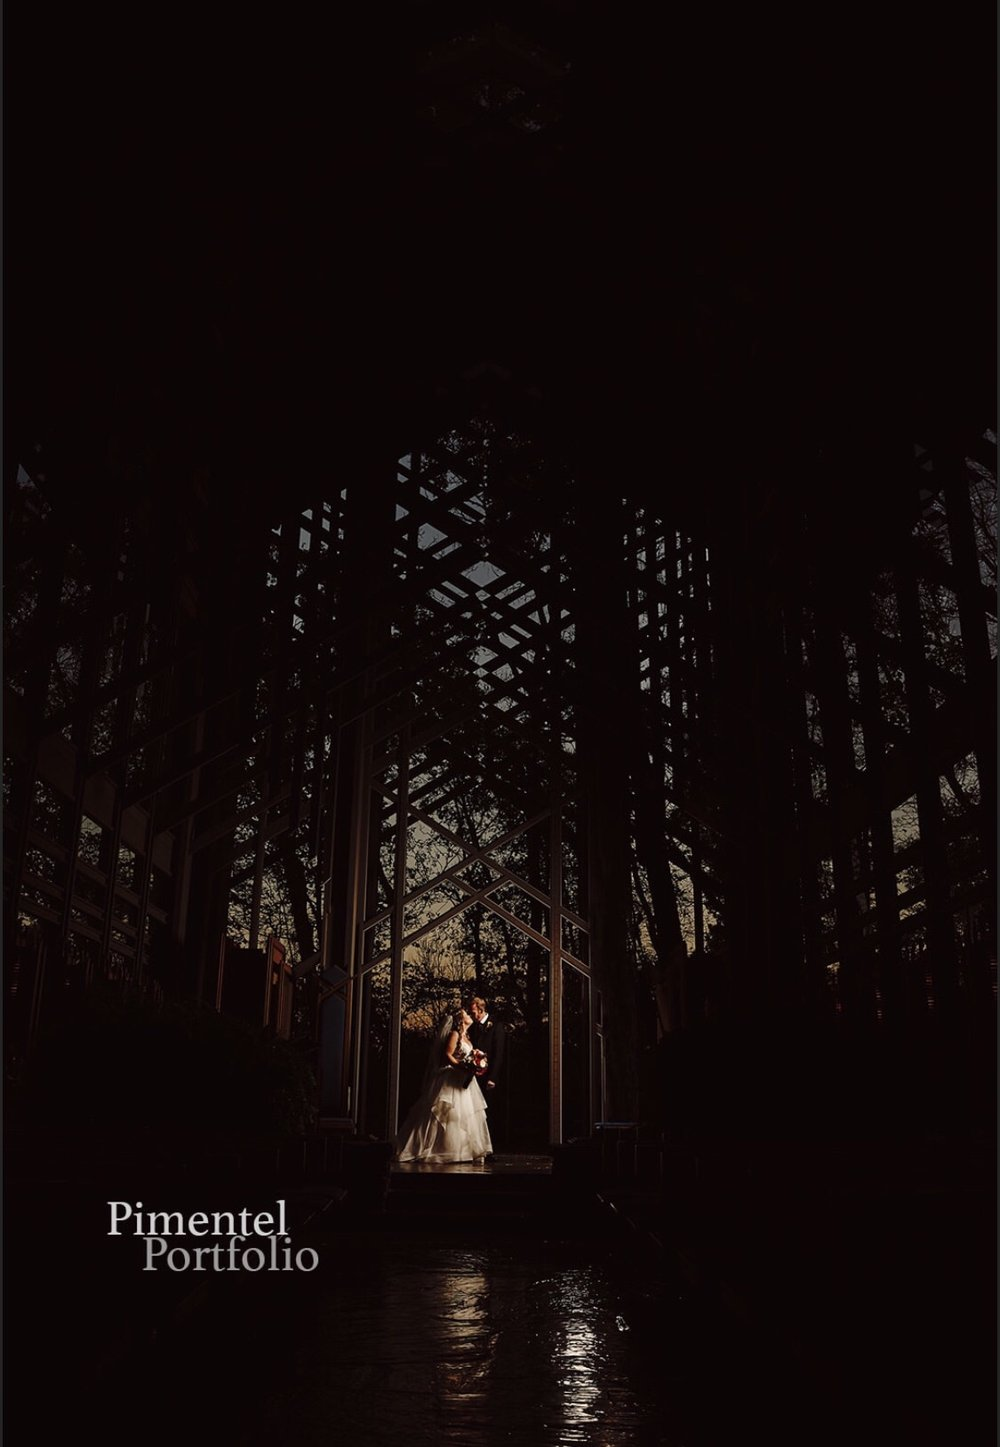 Thorncrown Chapel was the location for this Wedding Portrait. Image by Pimentel Portfolio LLC